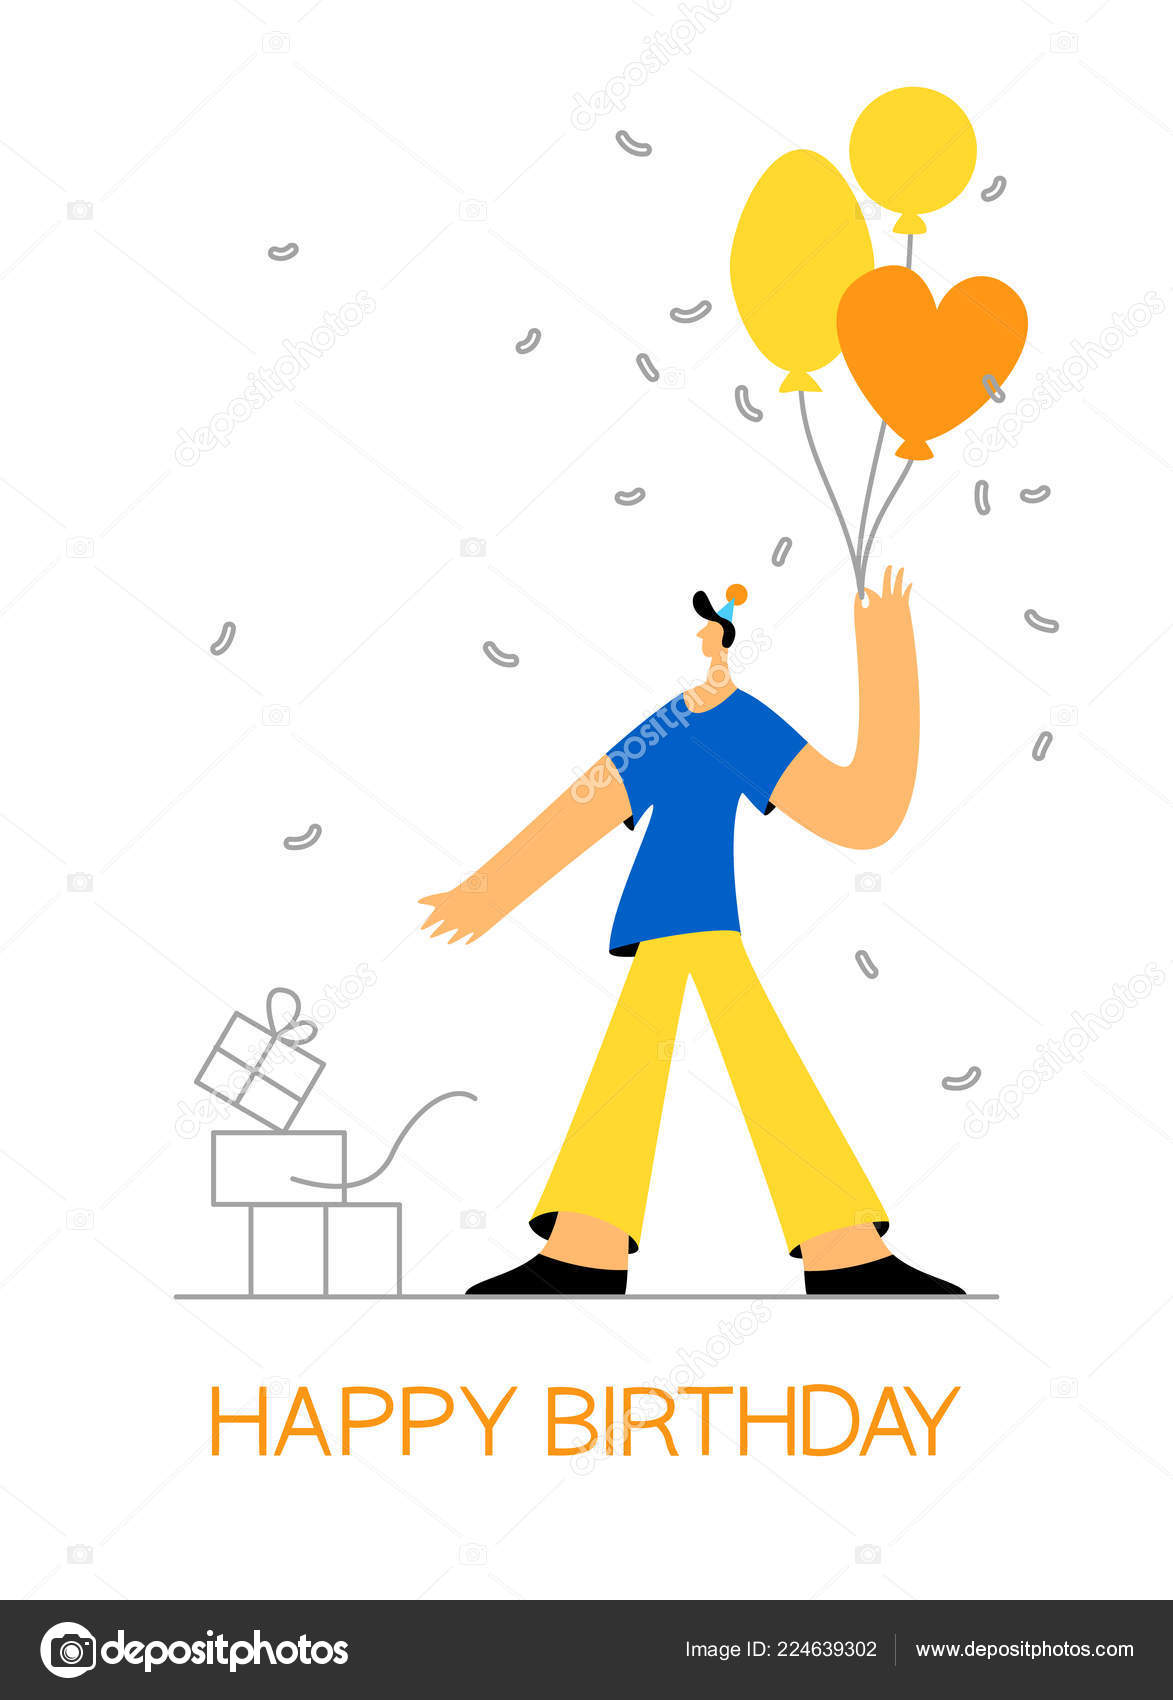 Birthday Celebration Greeting Card Poster Web Banner Young Man Balloon Stock Vector